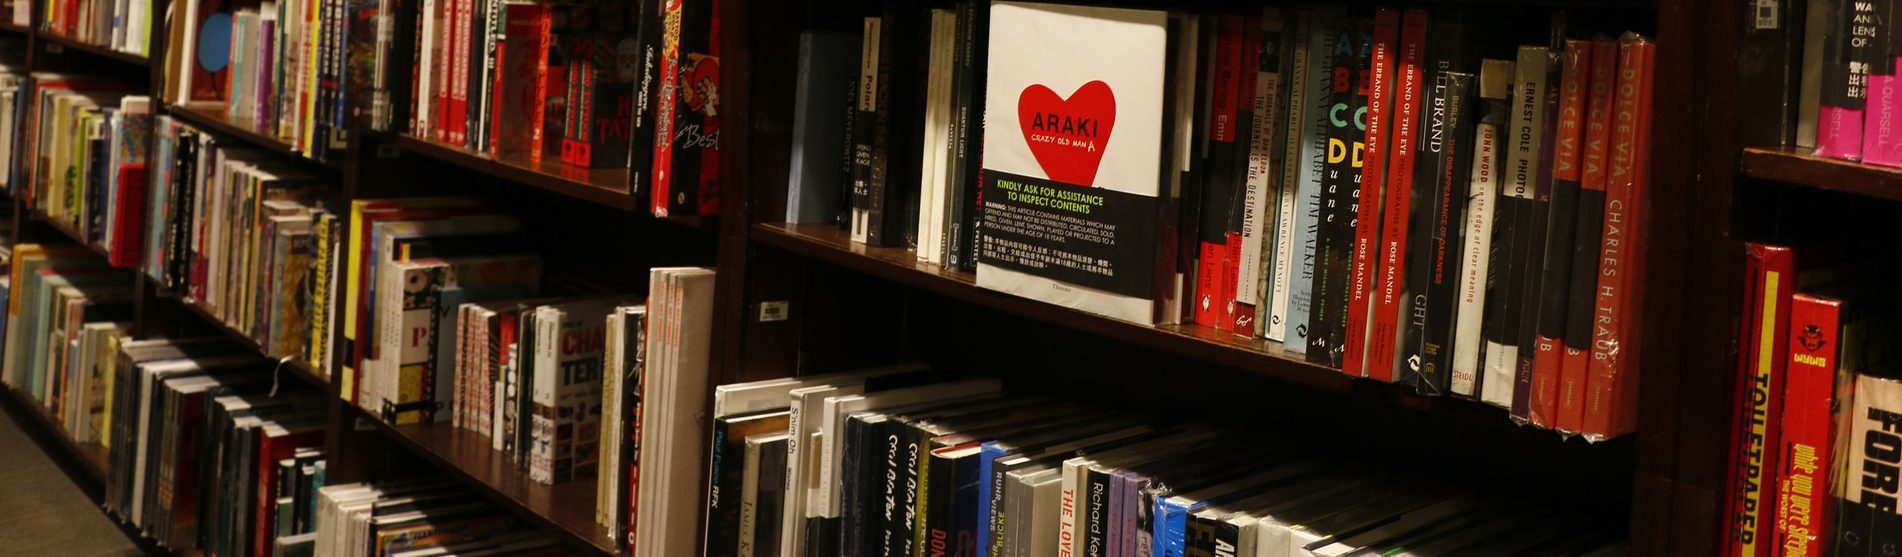 cropped-bookstore-1315560_1920-1.jpg